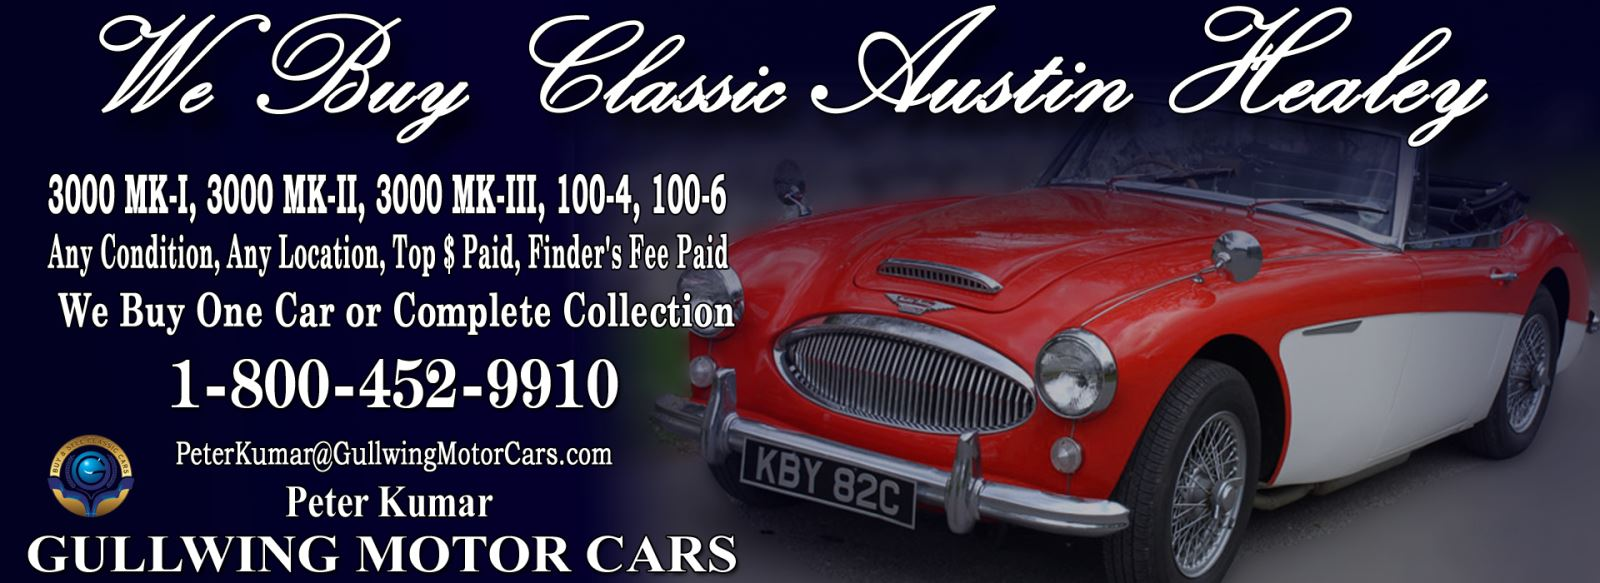 Classic Austin Healey 3000 Mark III for sale, we buy vintage Austin Healey MKIII. Call Peter Kumar. Gullwing Motor